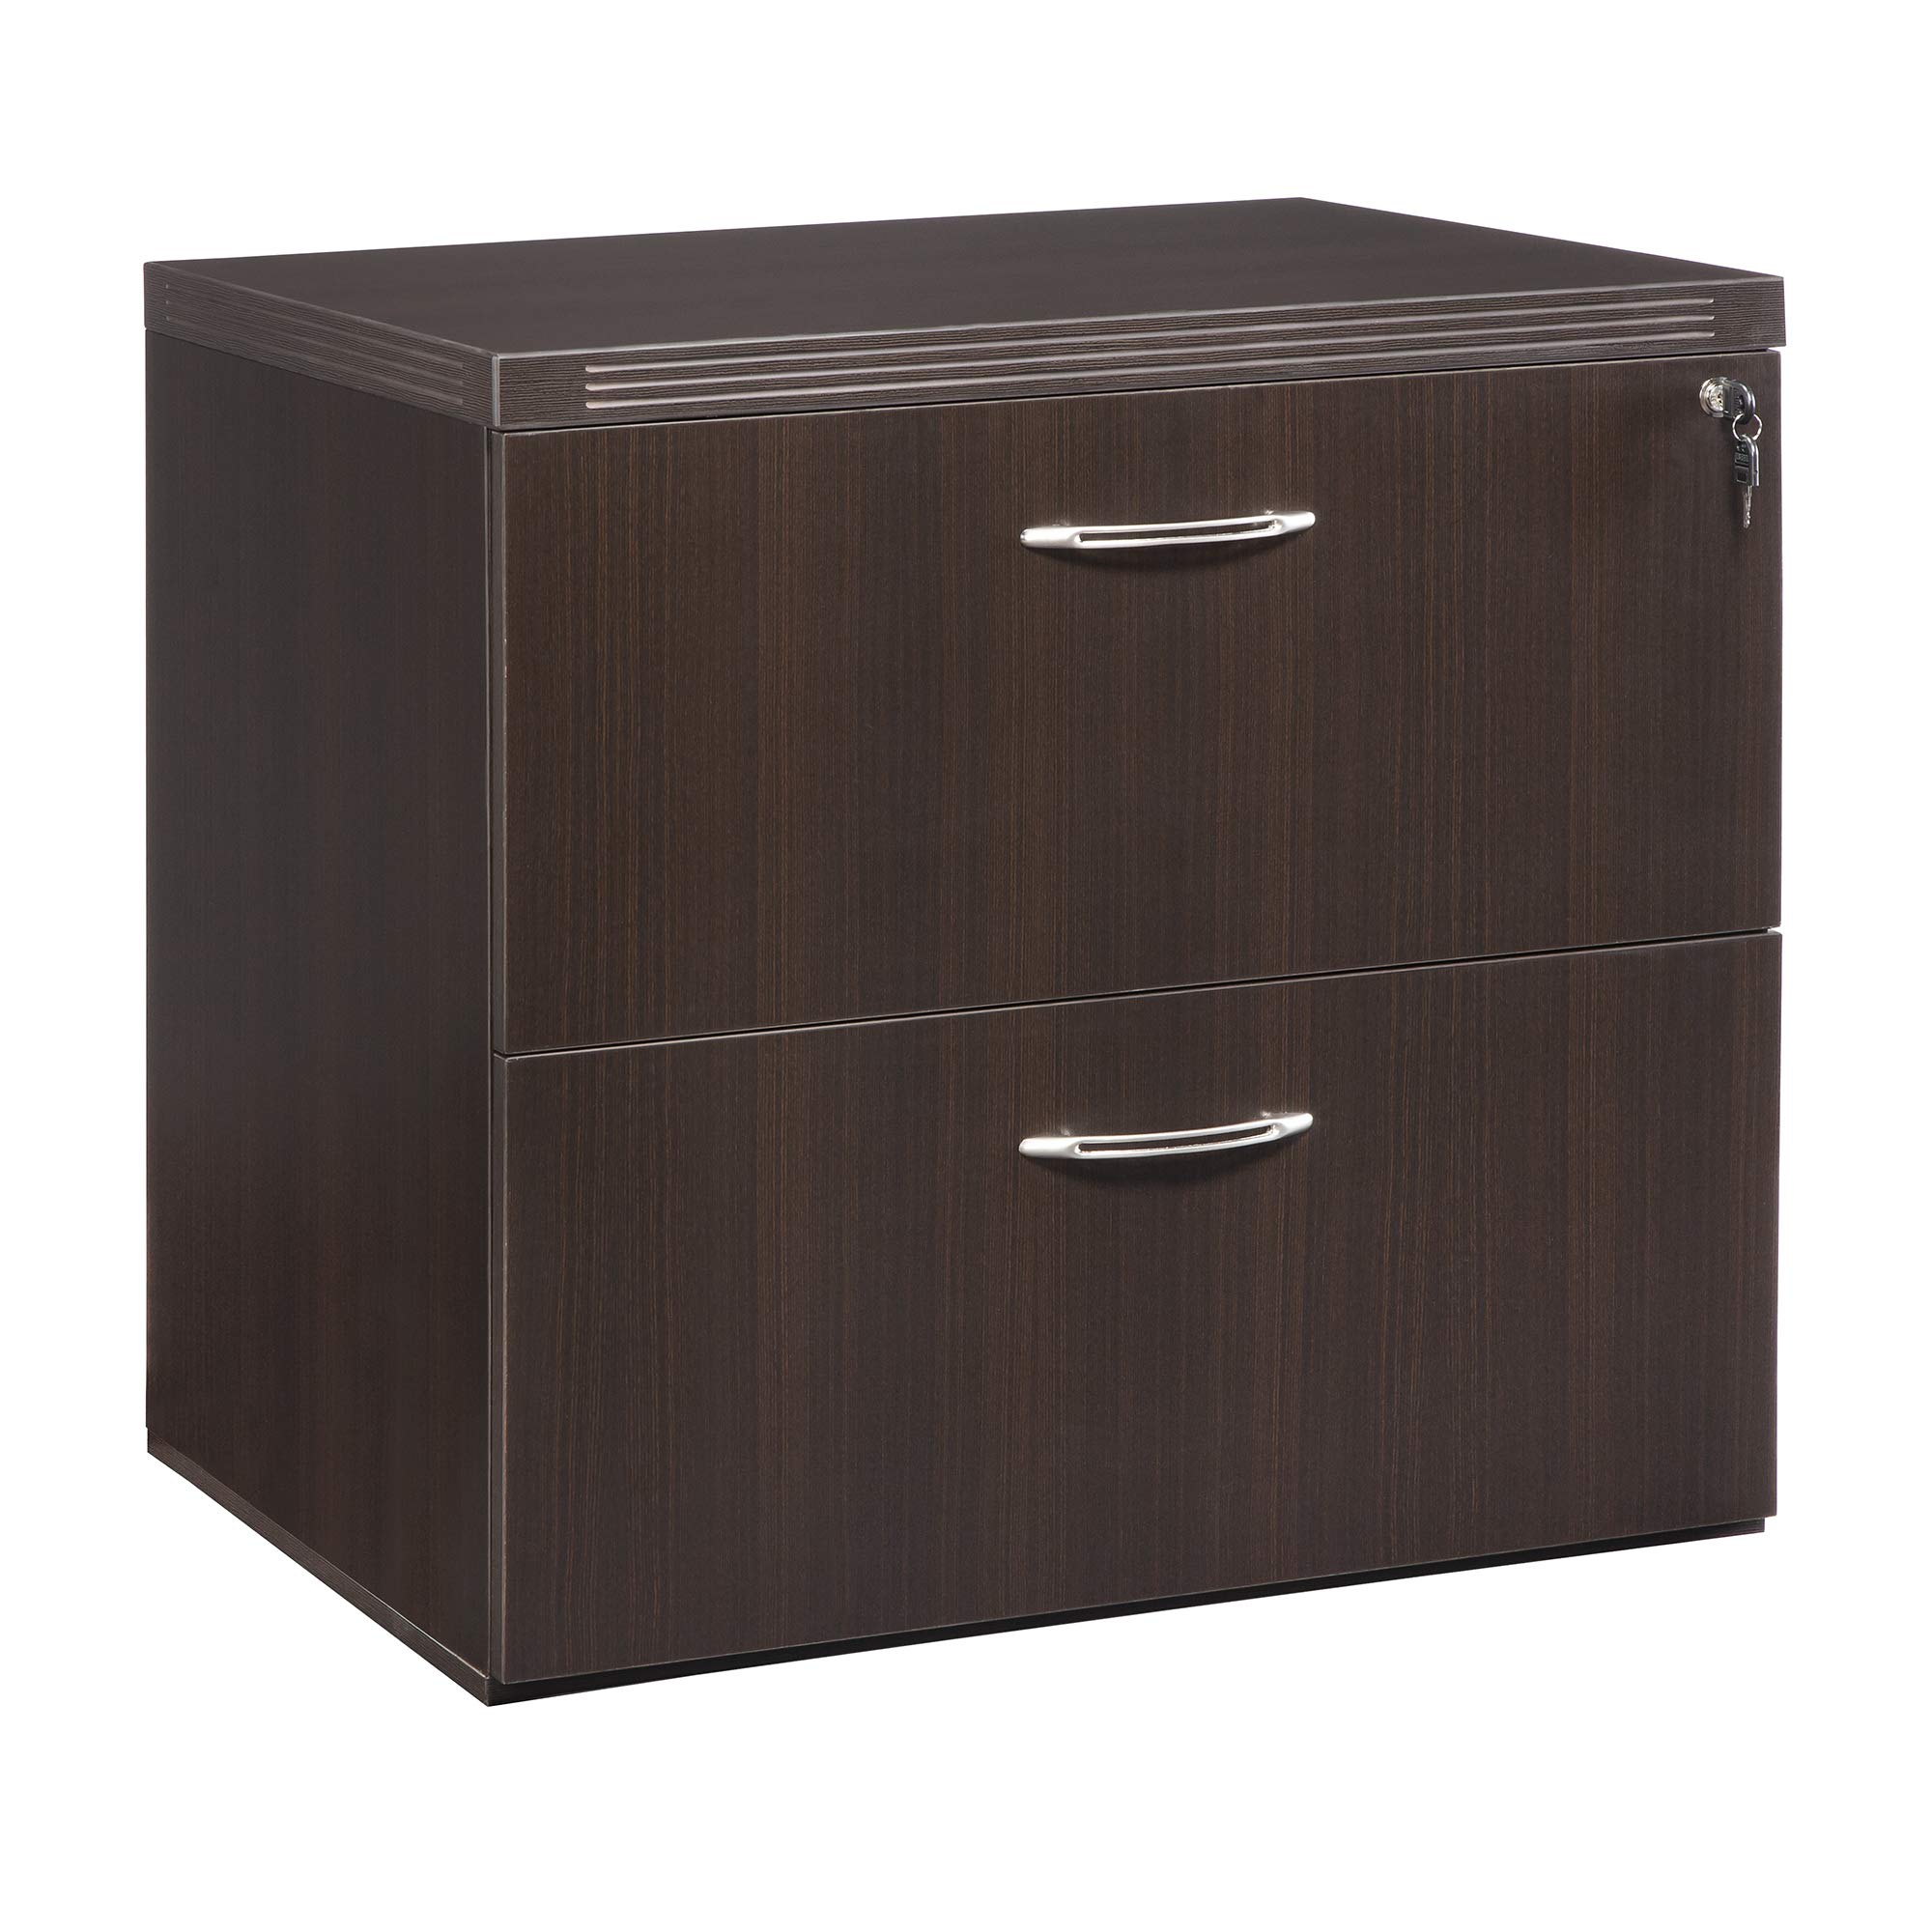 Mayline AFLF30LDC Aberdeen 30'' Freestanding Lateral File with 2 Drawers, Letter/Legal, Mocha Tf